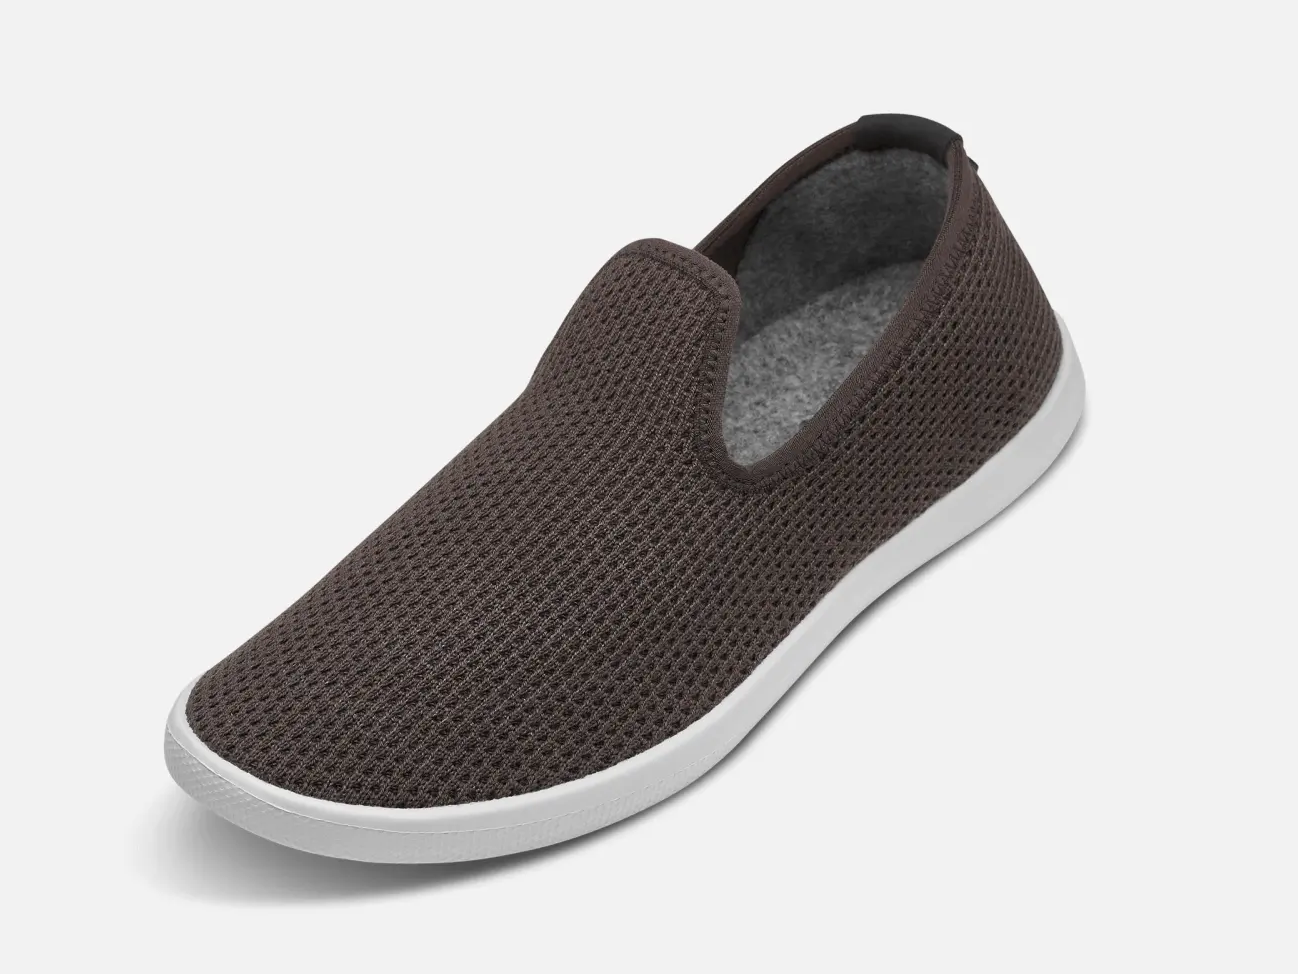 Women's Tree Loungers allbirds